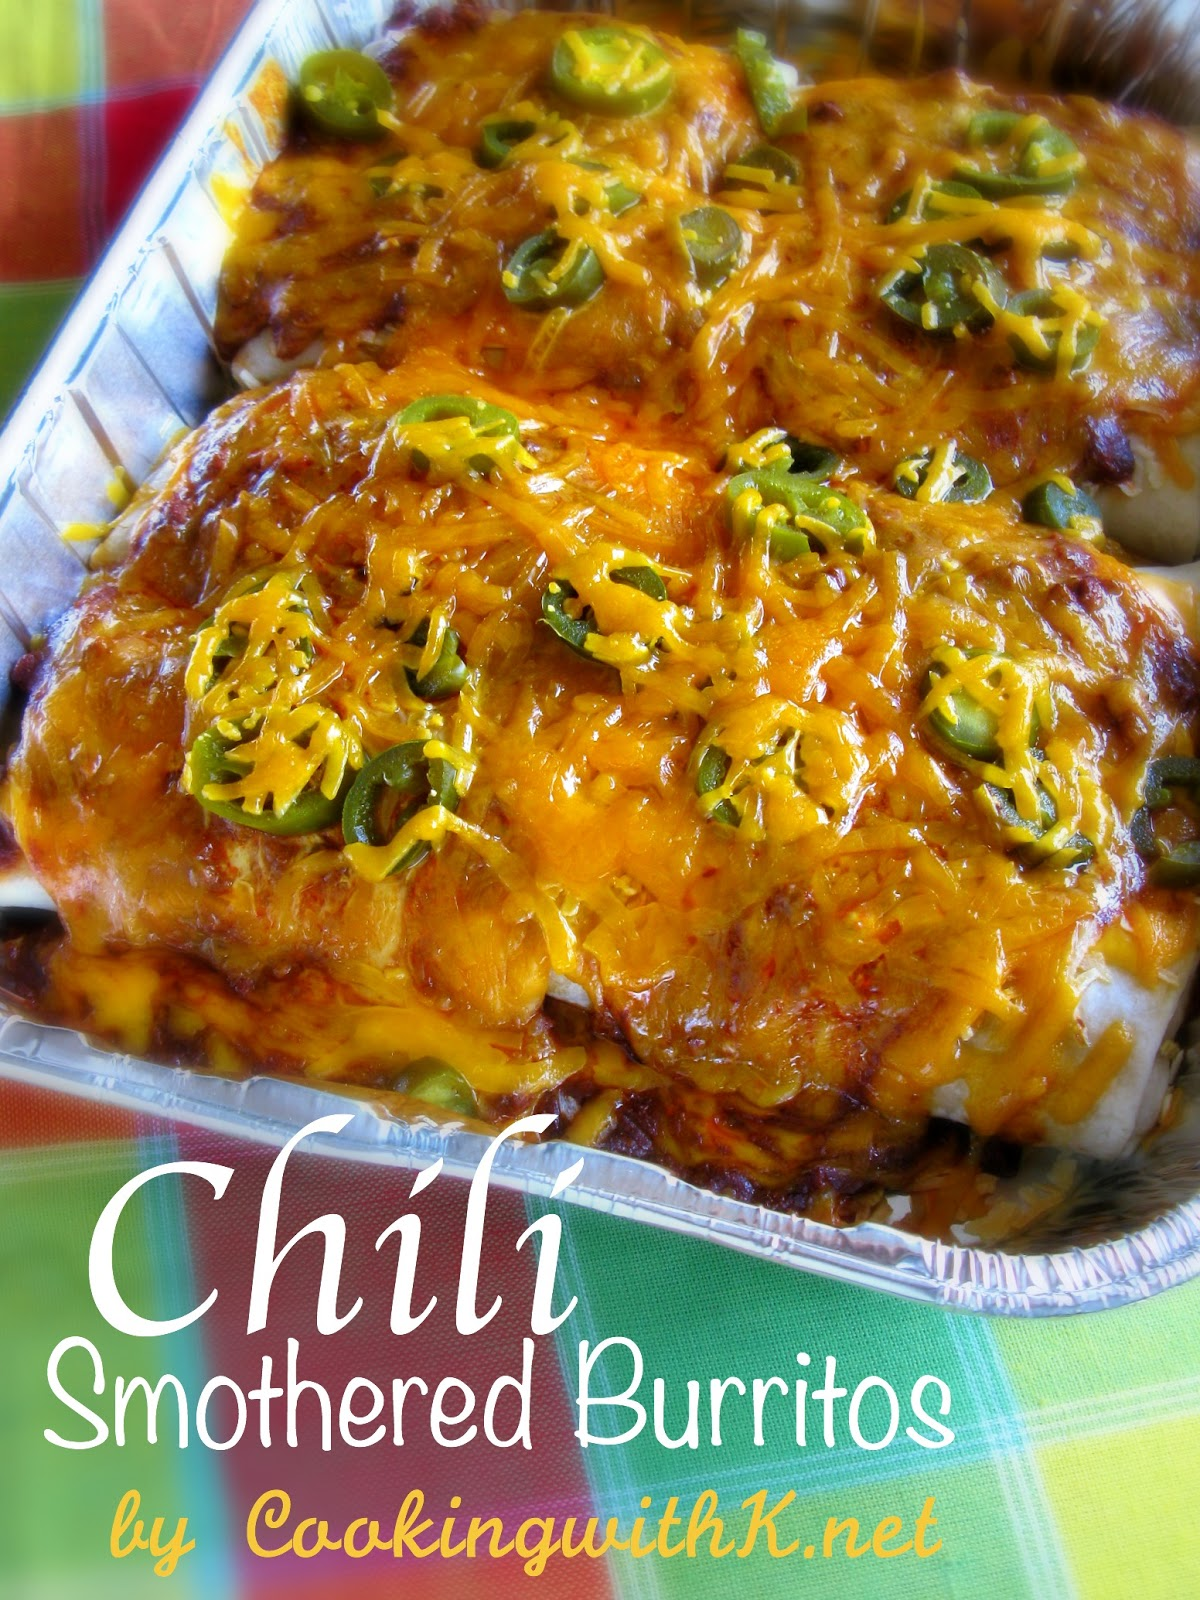 cooking with k chili smothered burritos using el